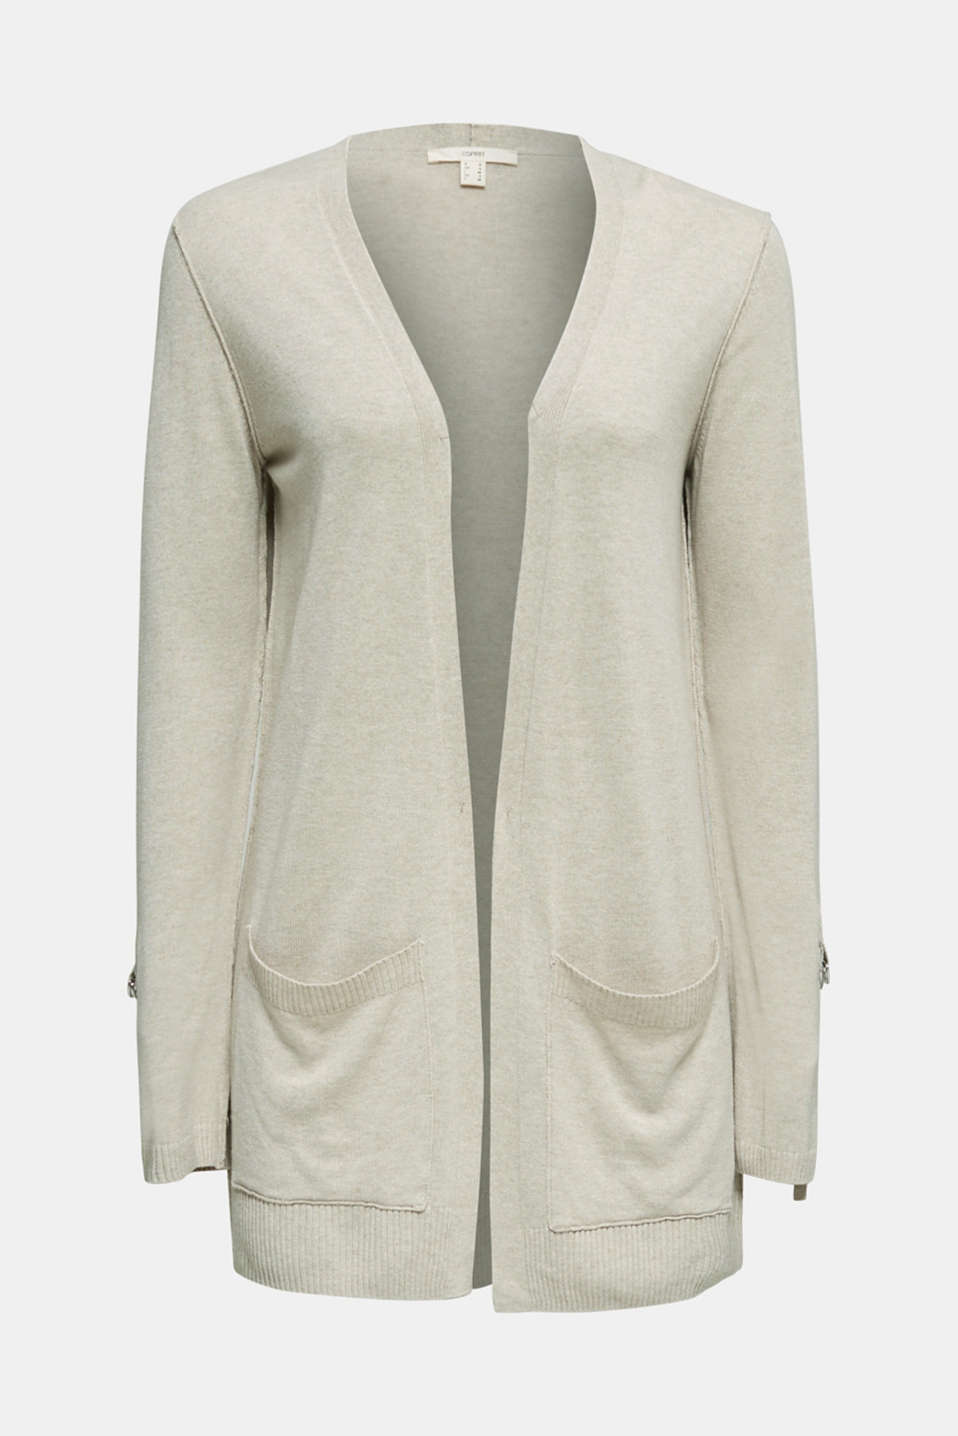 With linen: open-fronted cardigan with pockets, LIGHT BEIGE, detail image number 5